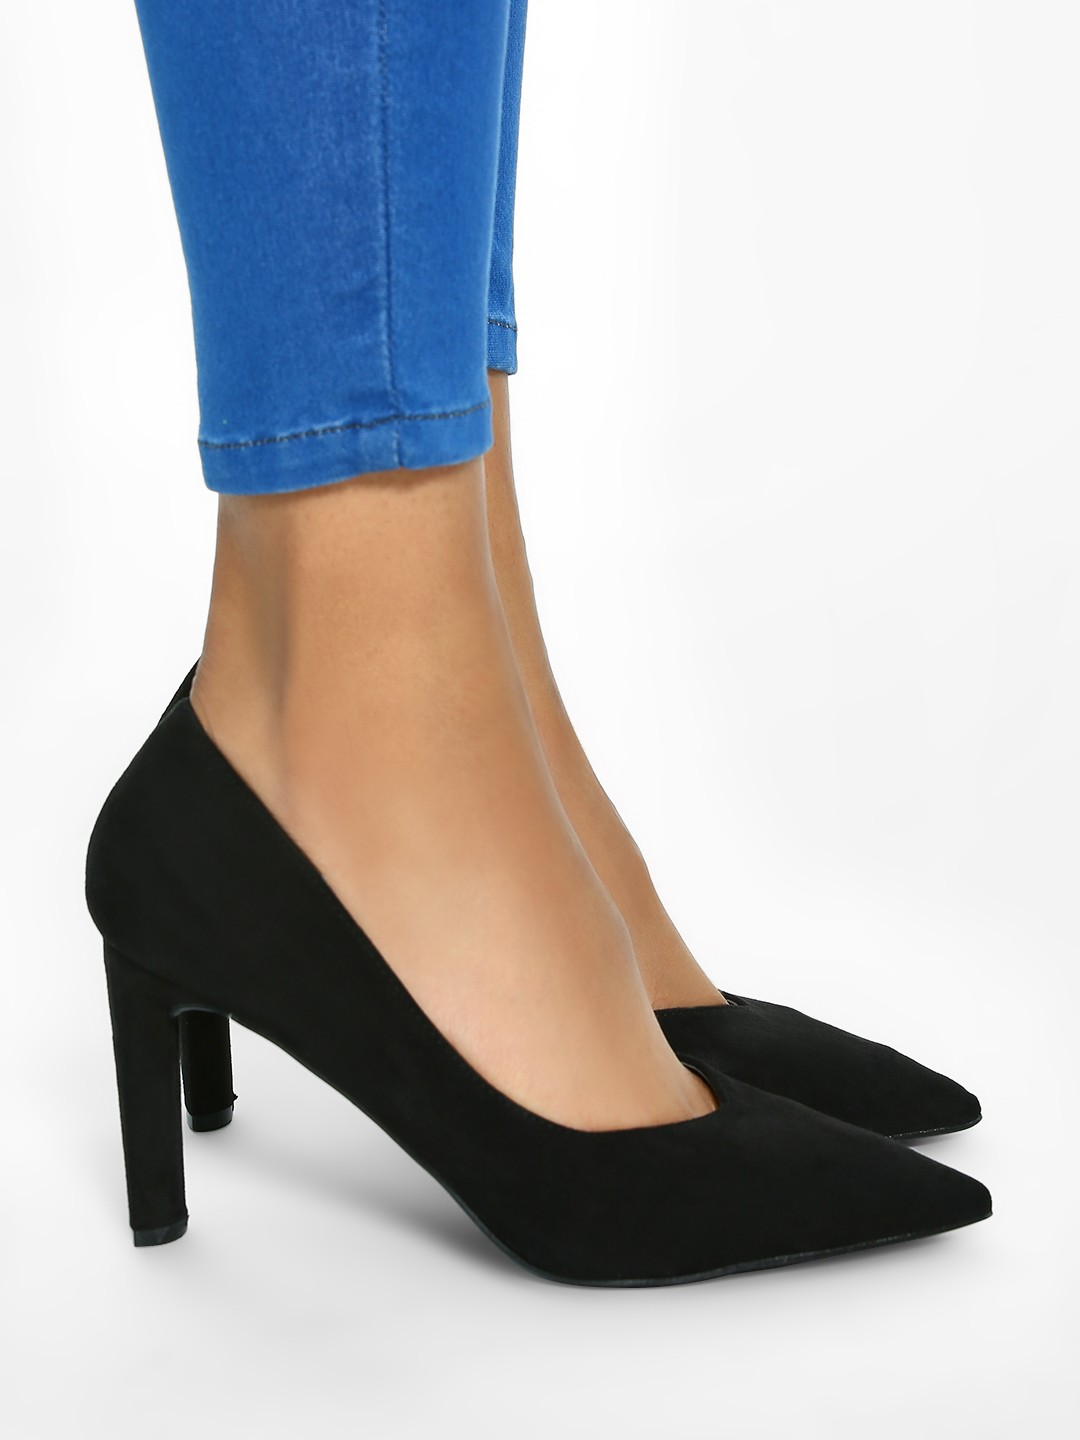 Intoto Black Basic Suede Finish Pumps 1